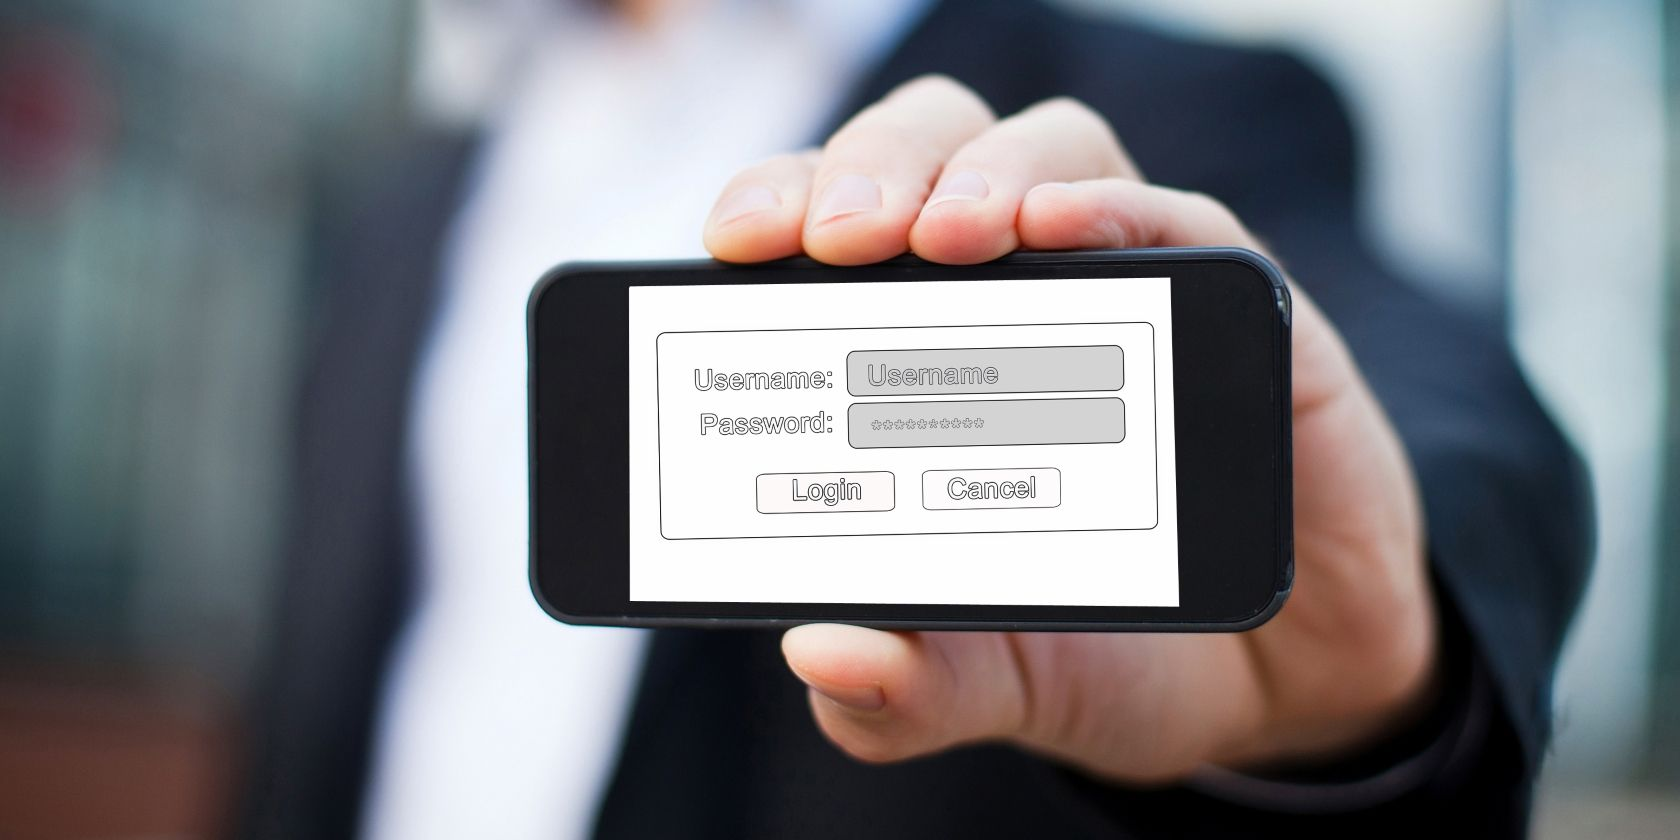 How To View Passwords For Saved Wi Fi Networks On Android